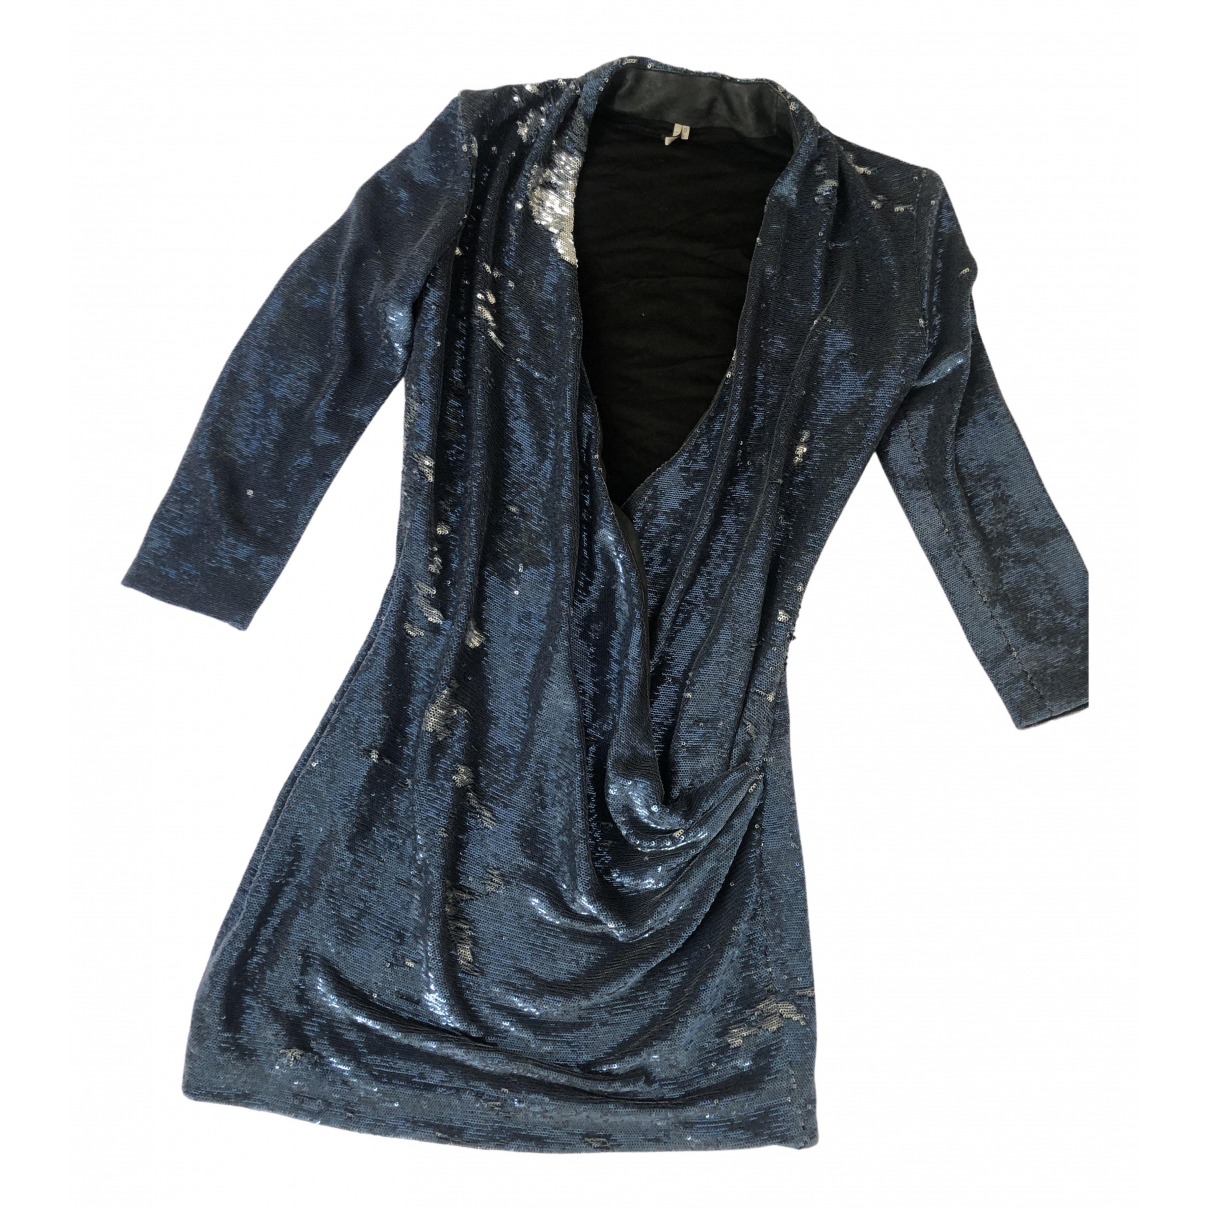 Iro N Blue Glitter dress for Women 0 0-5